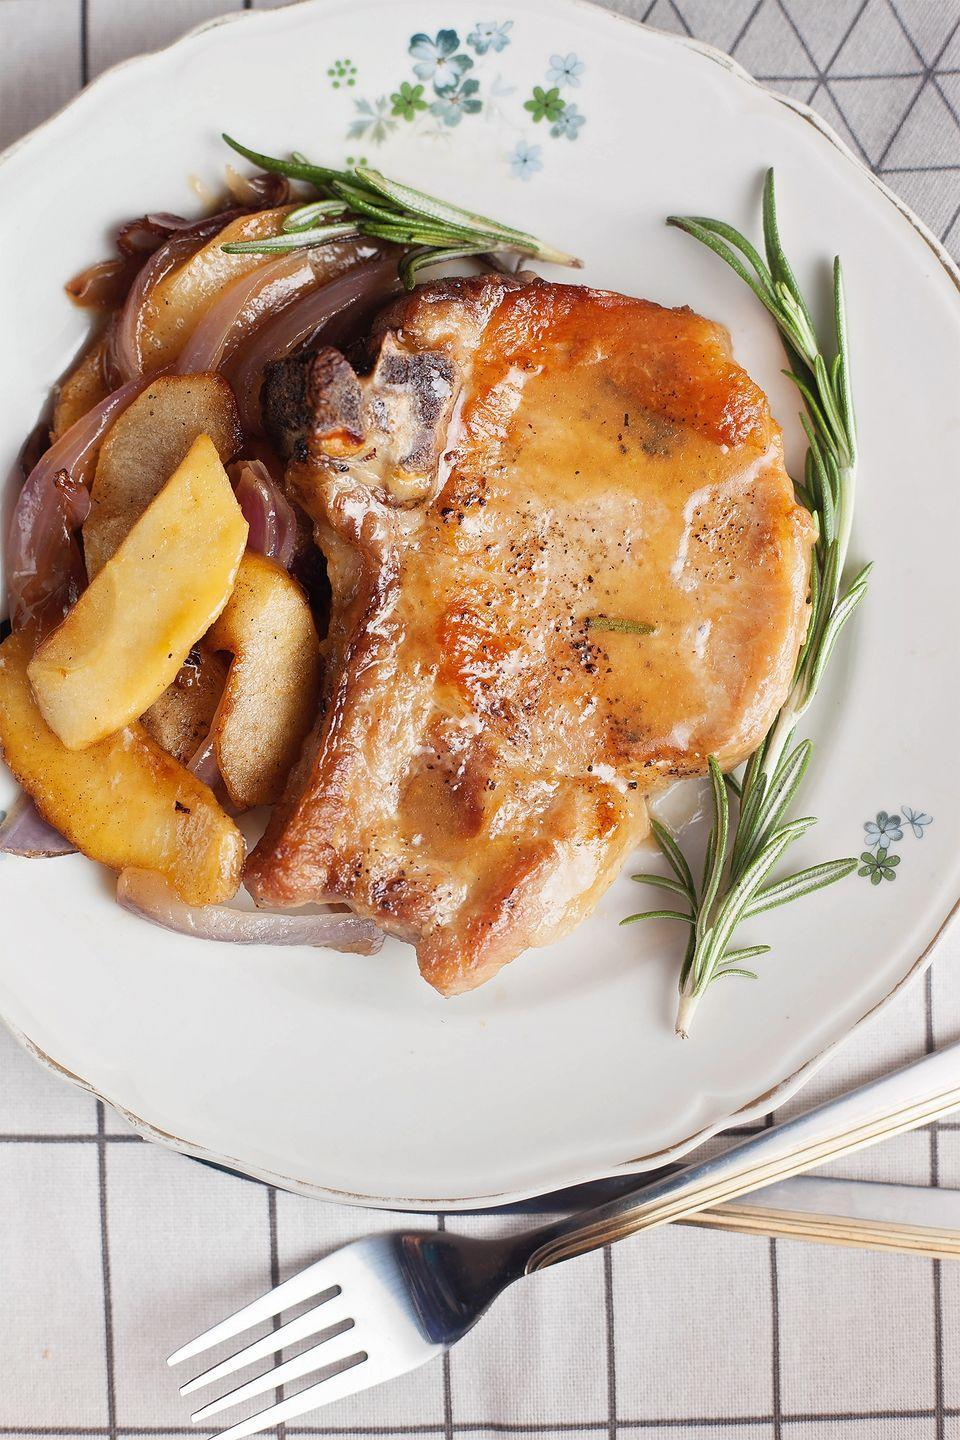 """<p>This spiced-up version of an old favorite is ready to serve in less than an hour.</p><p><strong><a href=""""https://www.countryliving.com/food-drinks/recipes/a1892/coriander-pork-sauteed-apples-onions-4074/"""" rel=""""nofollow noopener"""" target=""""_blank"""" data-ylk=""""slk:Get the recipe"""" class=""""link rapid-noclick-resp"""">Get the recipe</a>.</strong></p>"""